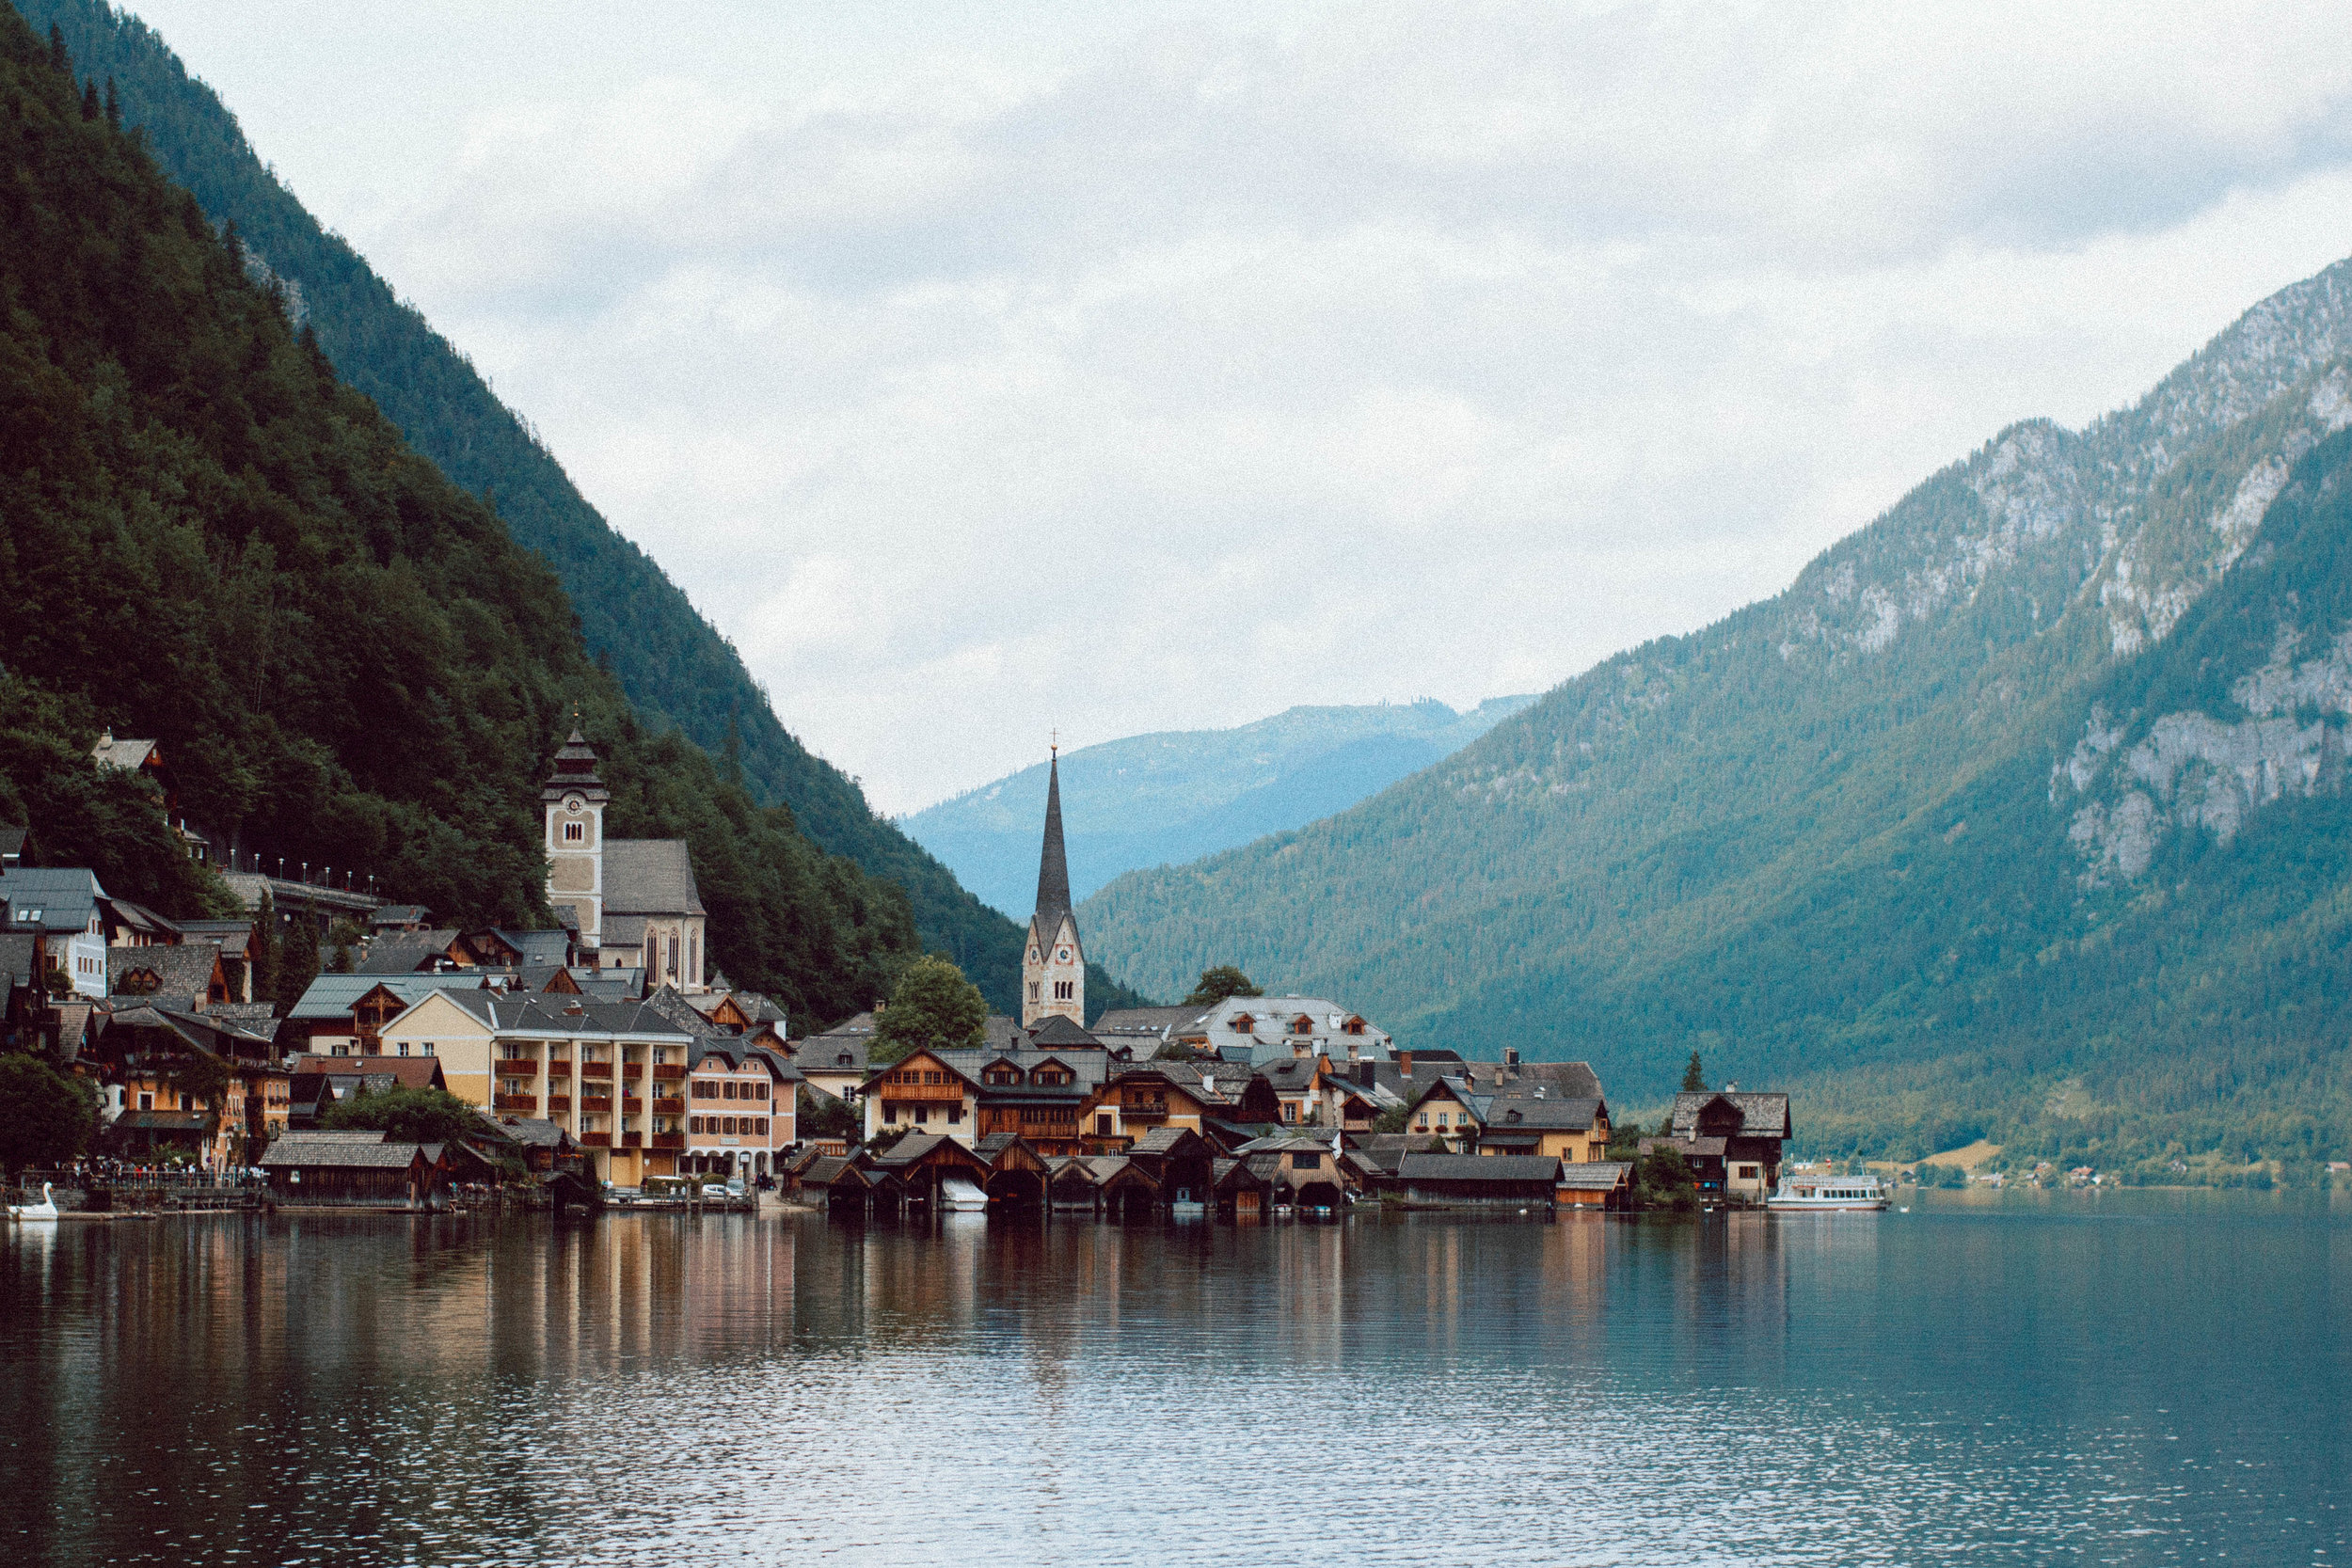 The 'famous' Hallstatt postcard shot.